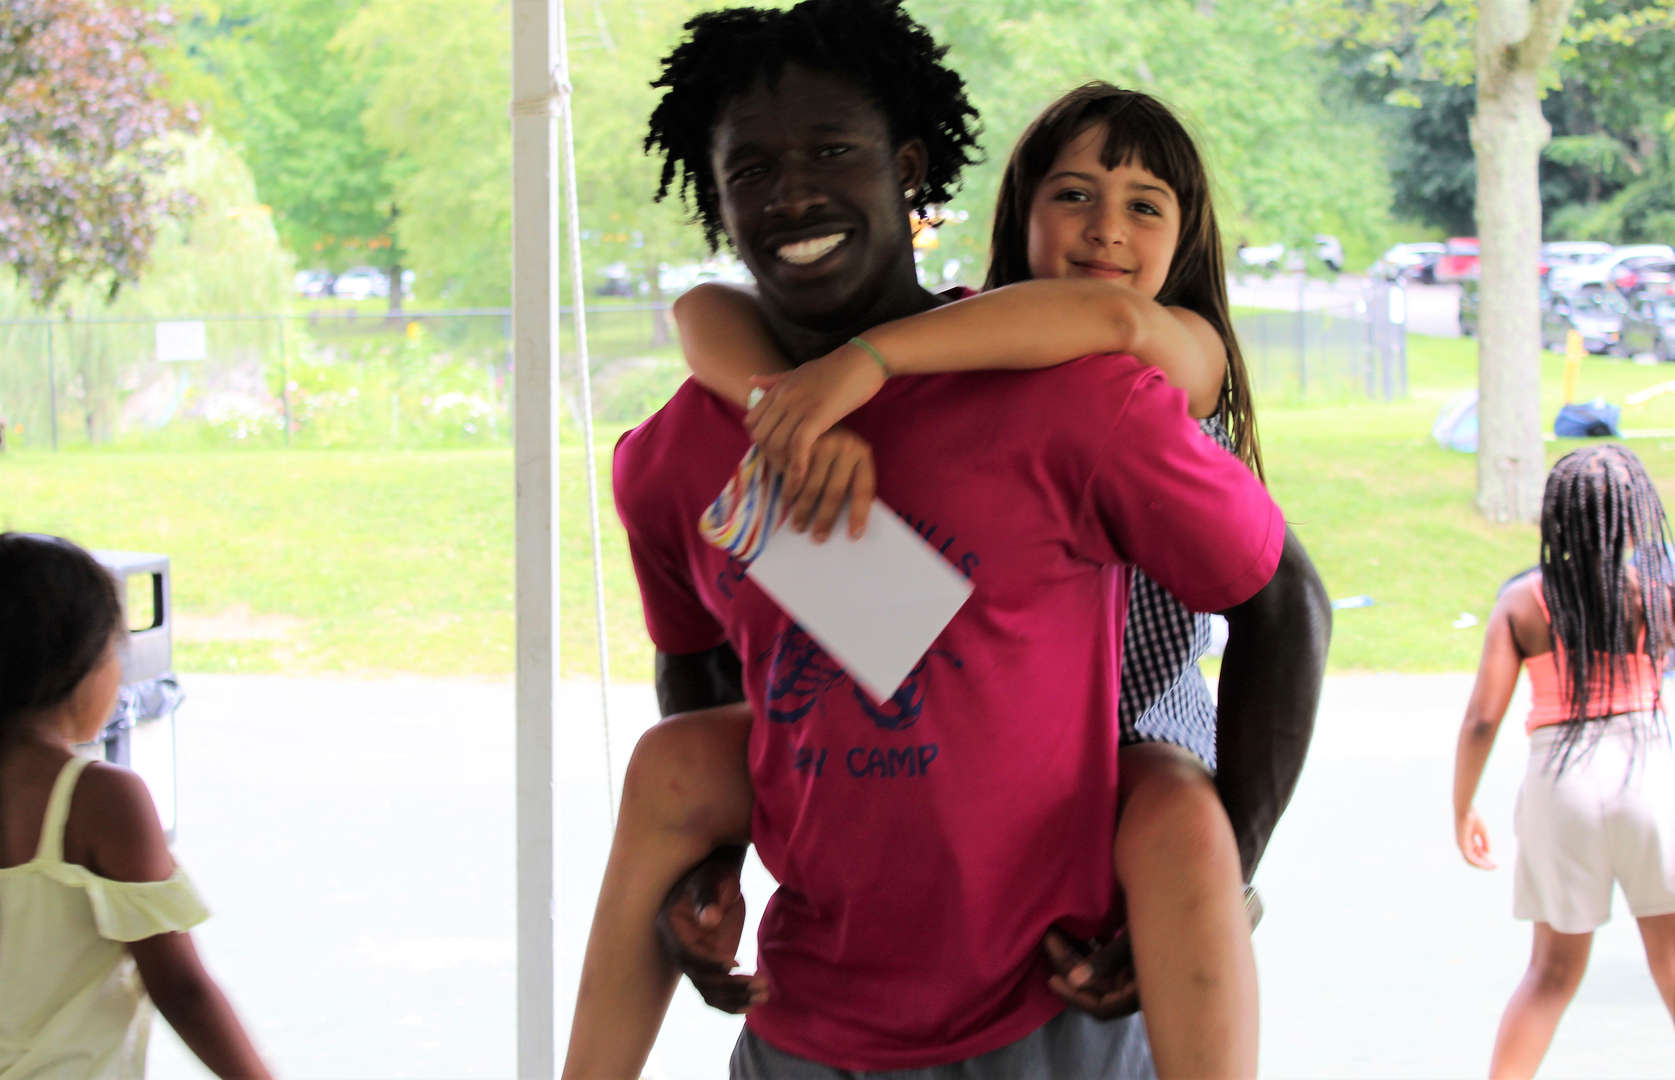 A staff member gives a piggy-back ride to a young girl attending camp.